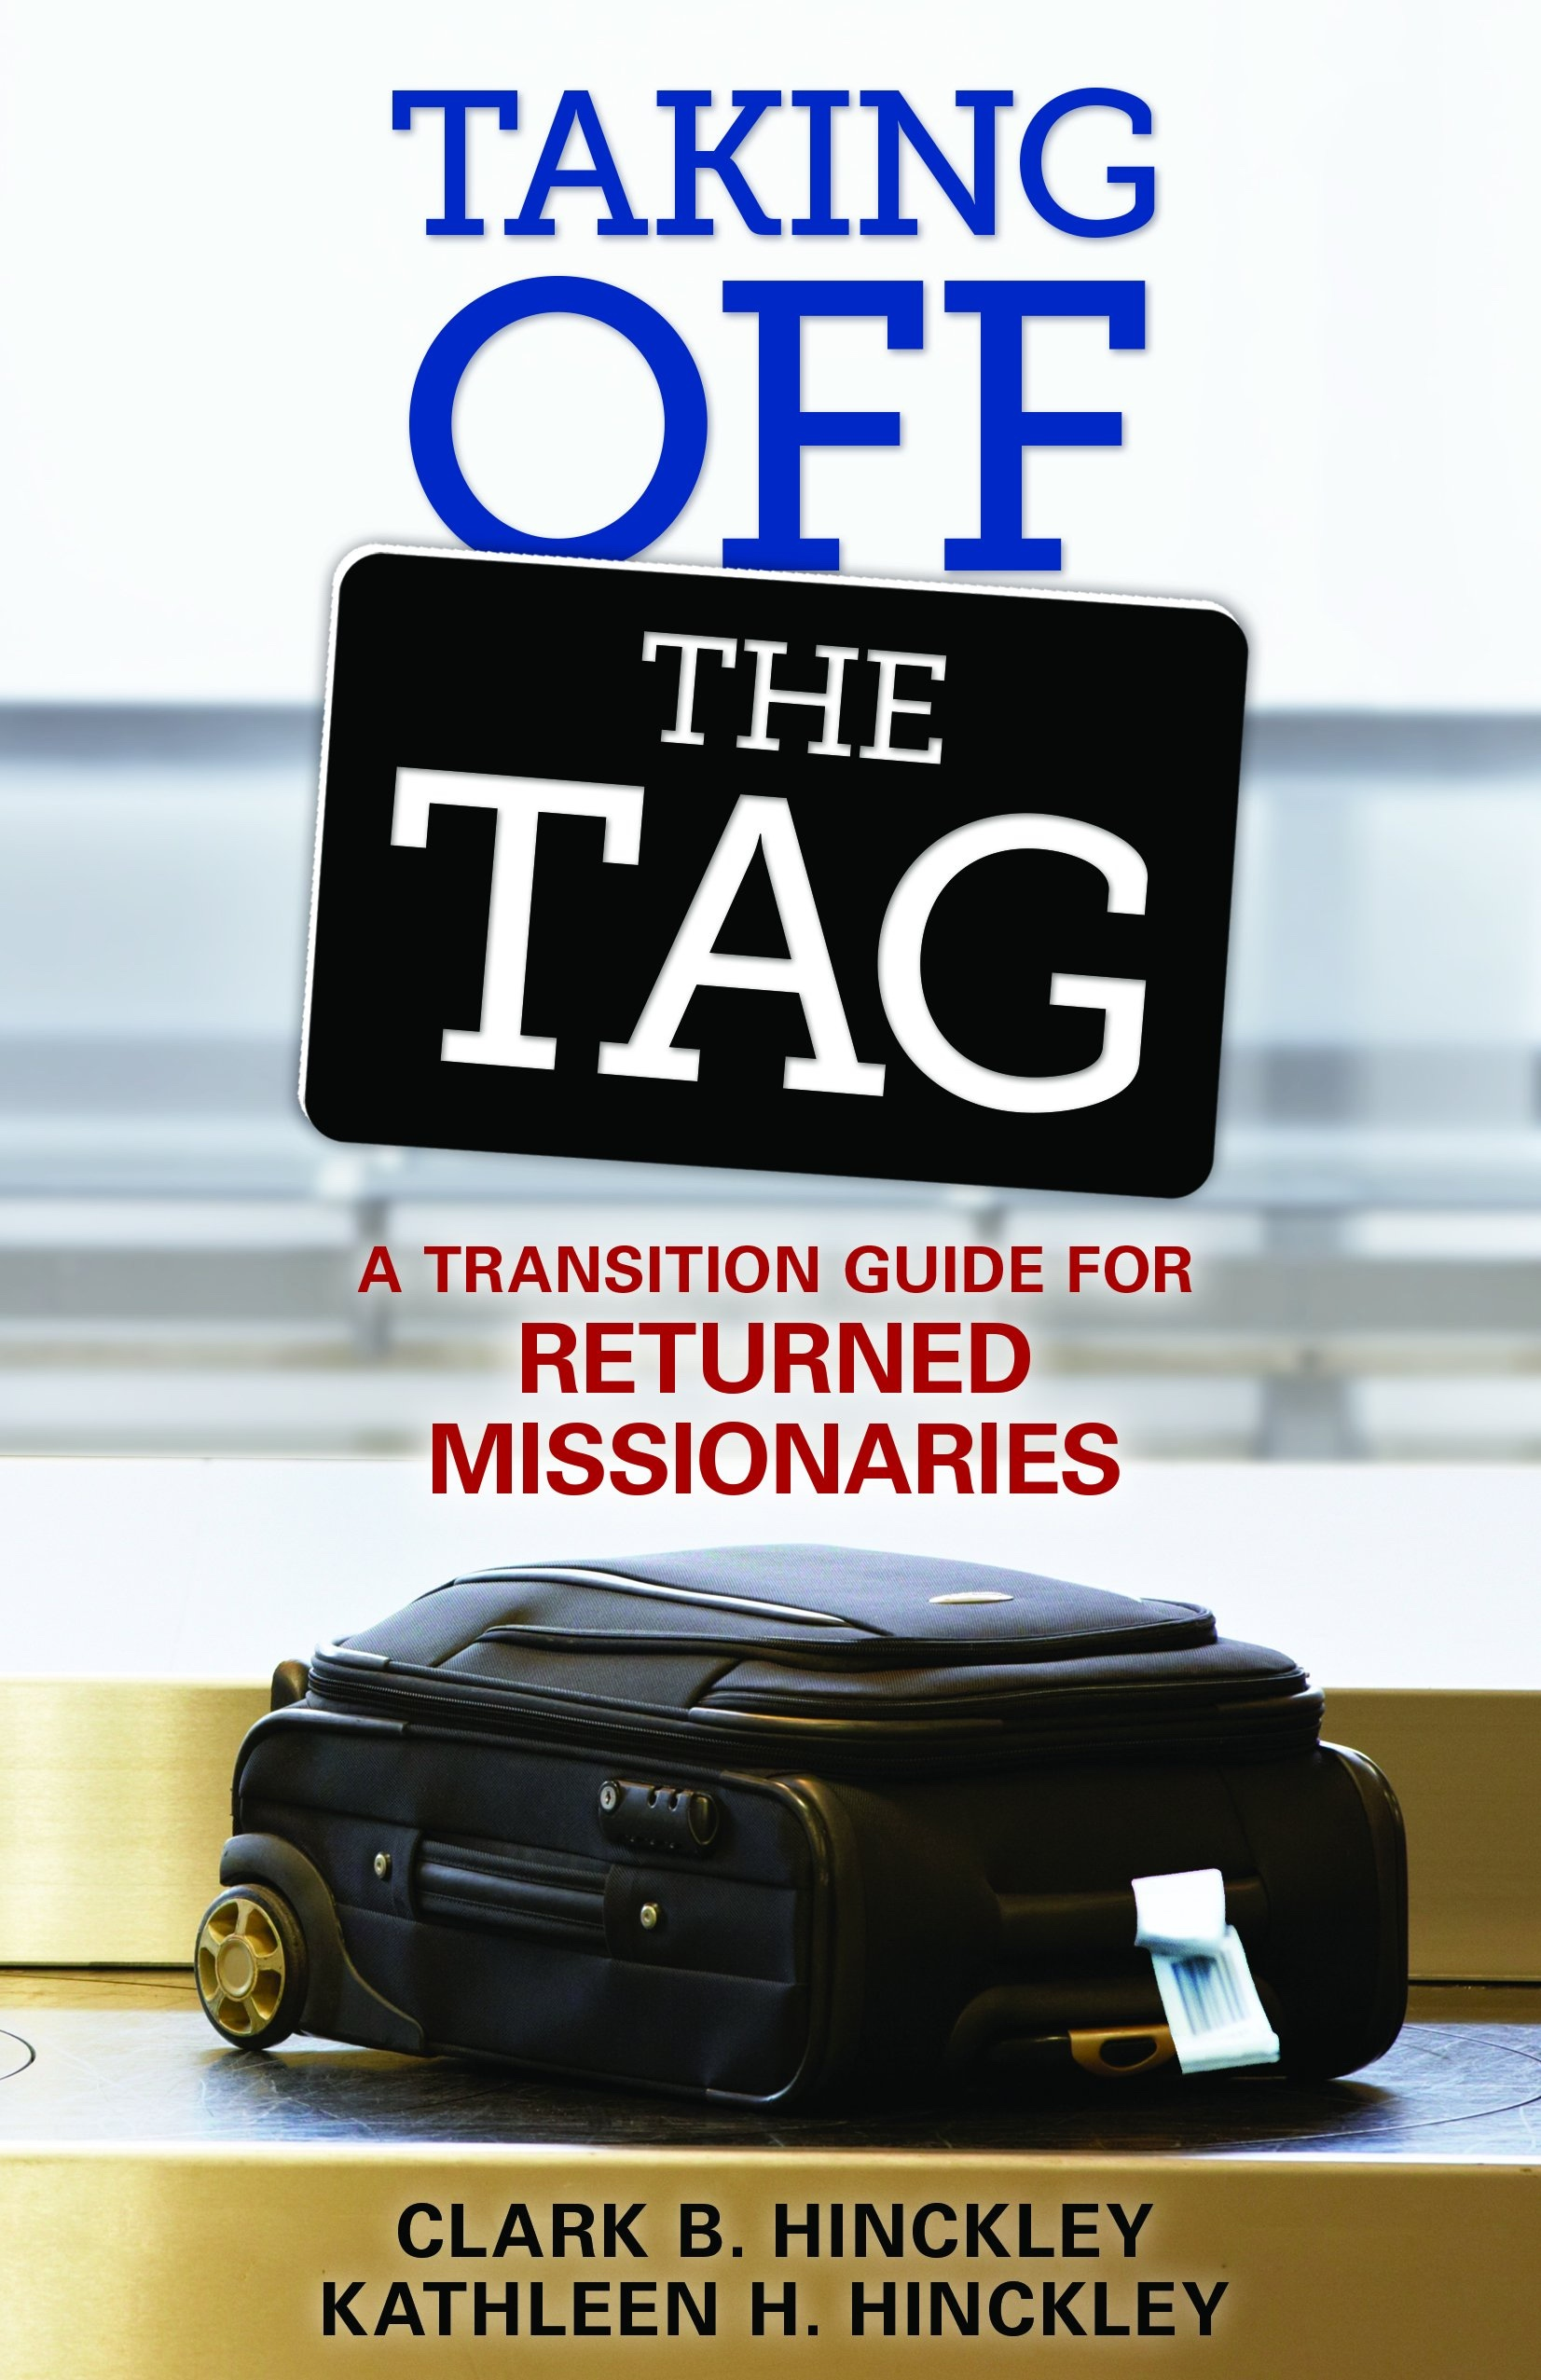 Taking Off the Tag;   A Transition Guide for Returned Missionaries, Clark B. & Kathleen H. Hinckley